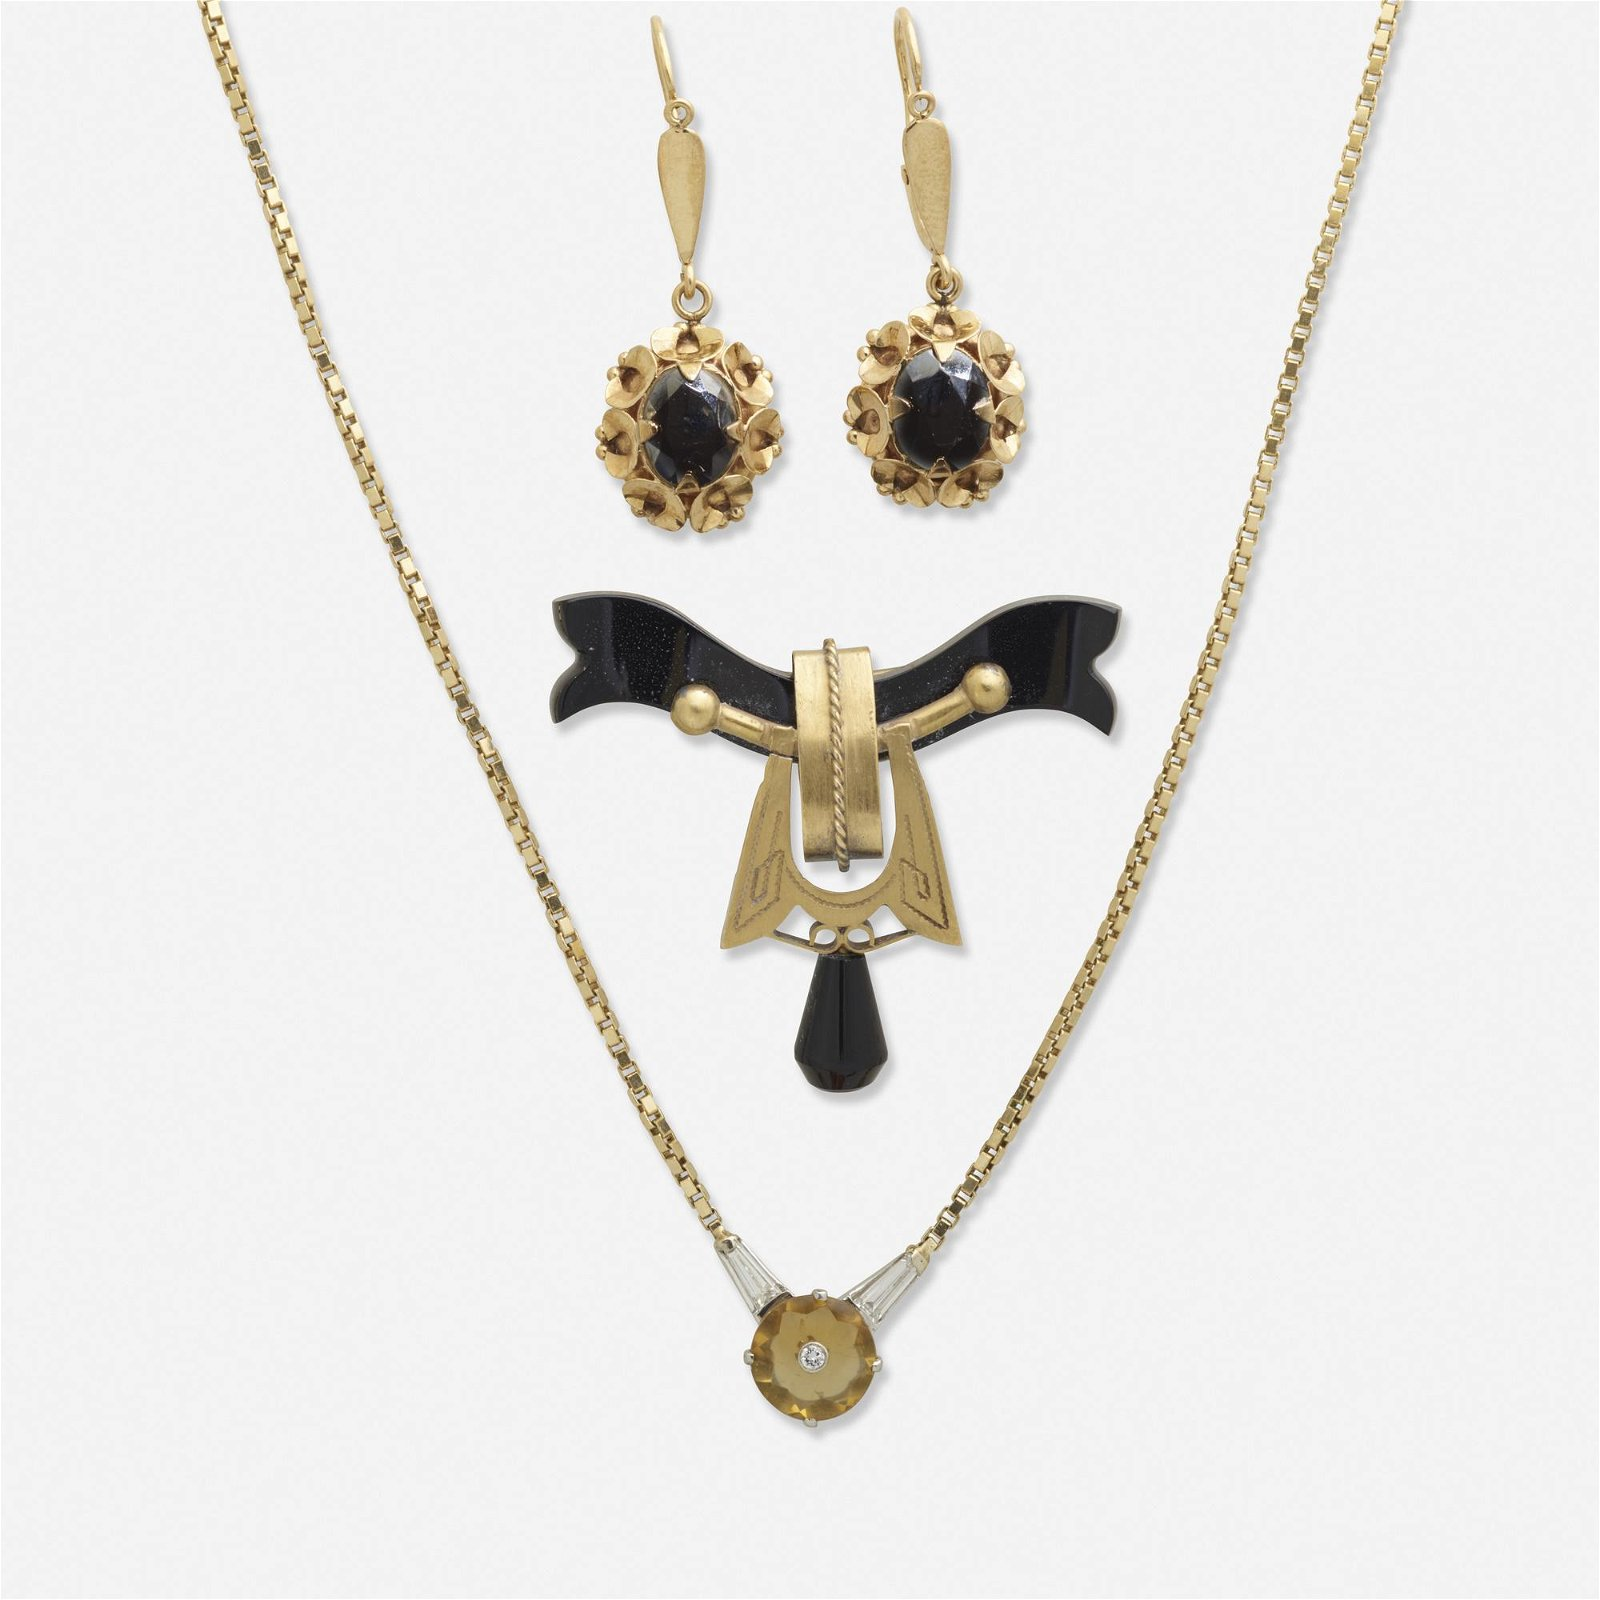 Group of yellow gold victorian jewelry